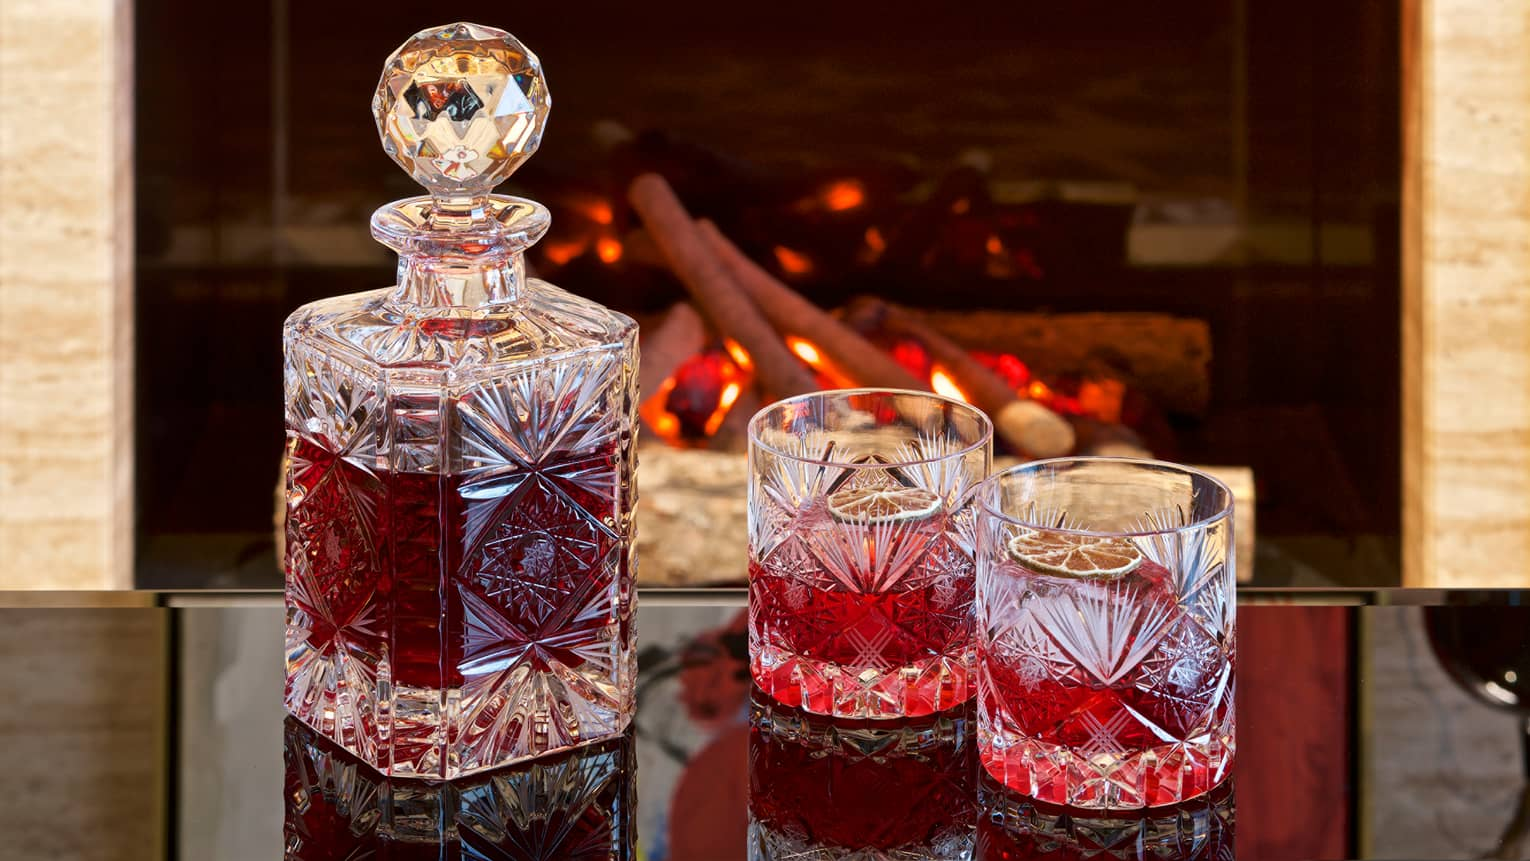 Cranberry-infused vodka in heavy crystal rocks glasses, decanter in front of fireplace